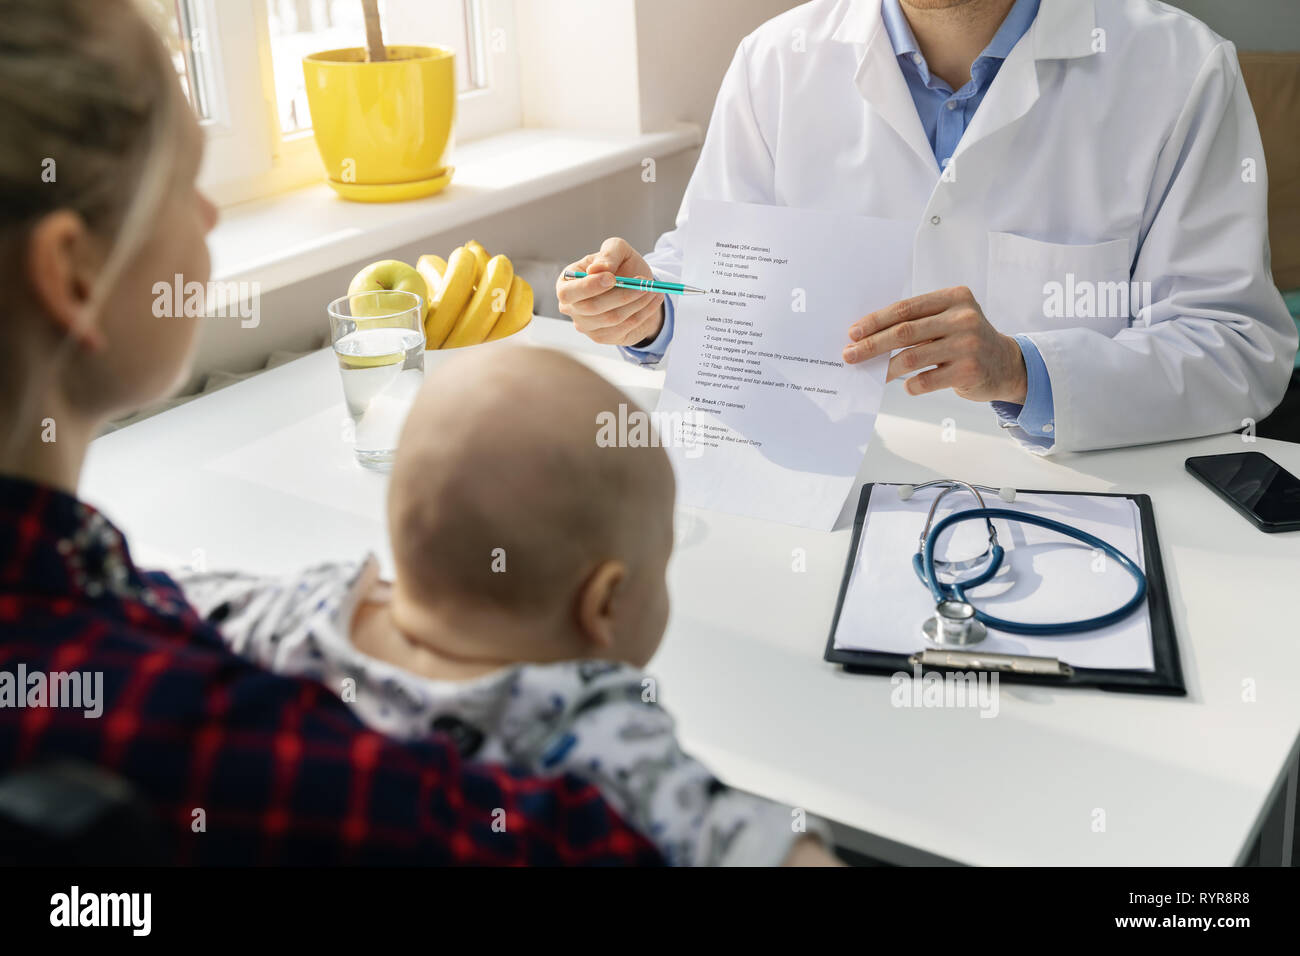 nutritionist and young mother with baby discussing healthy balanced nutrition plan in office Stock Photo